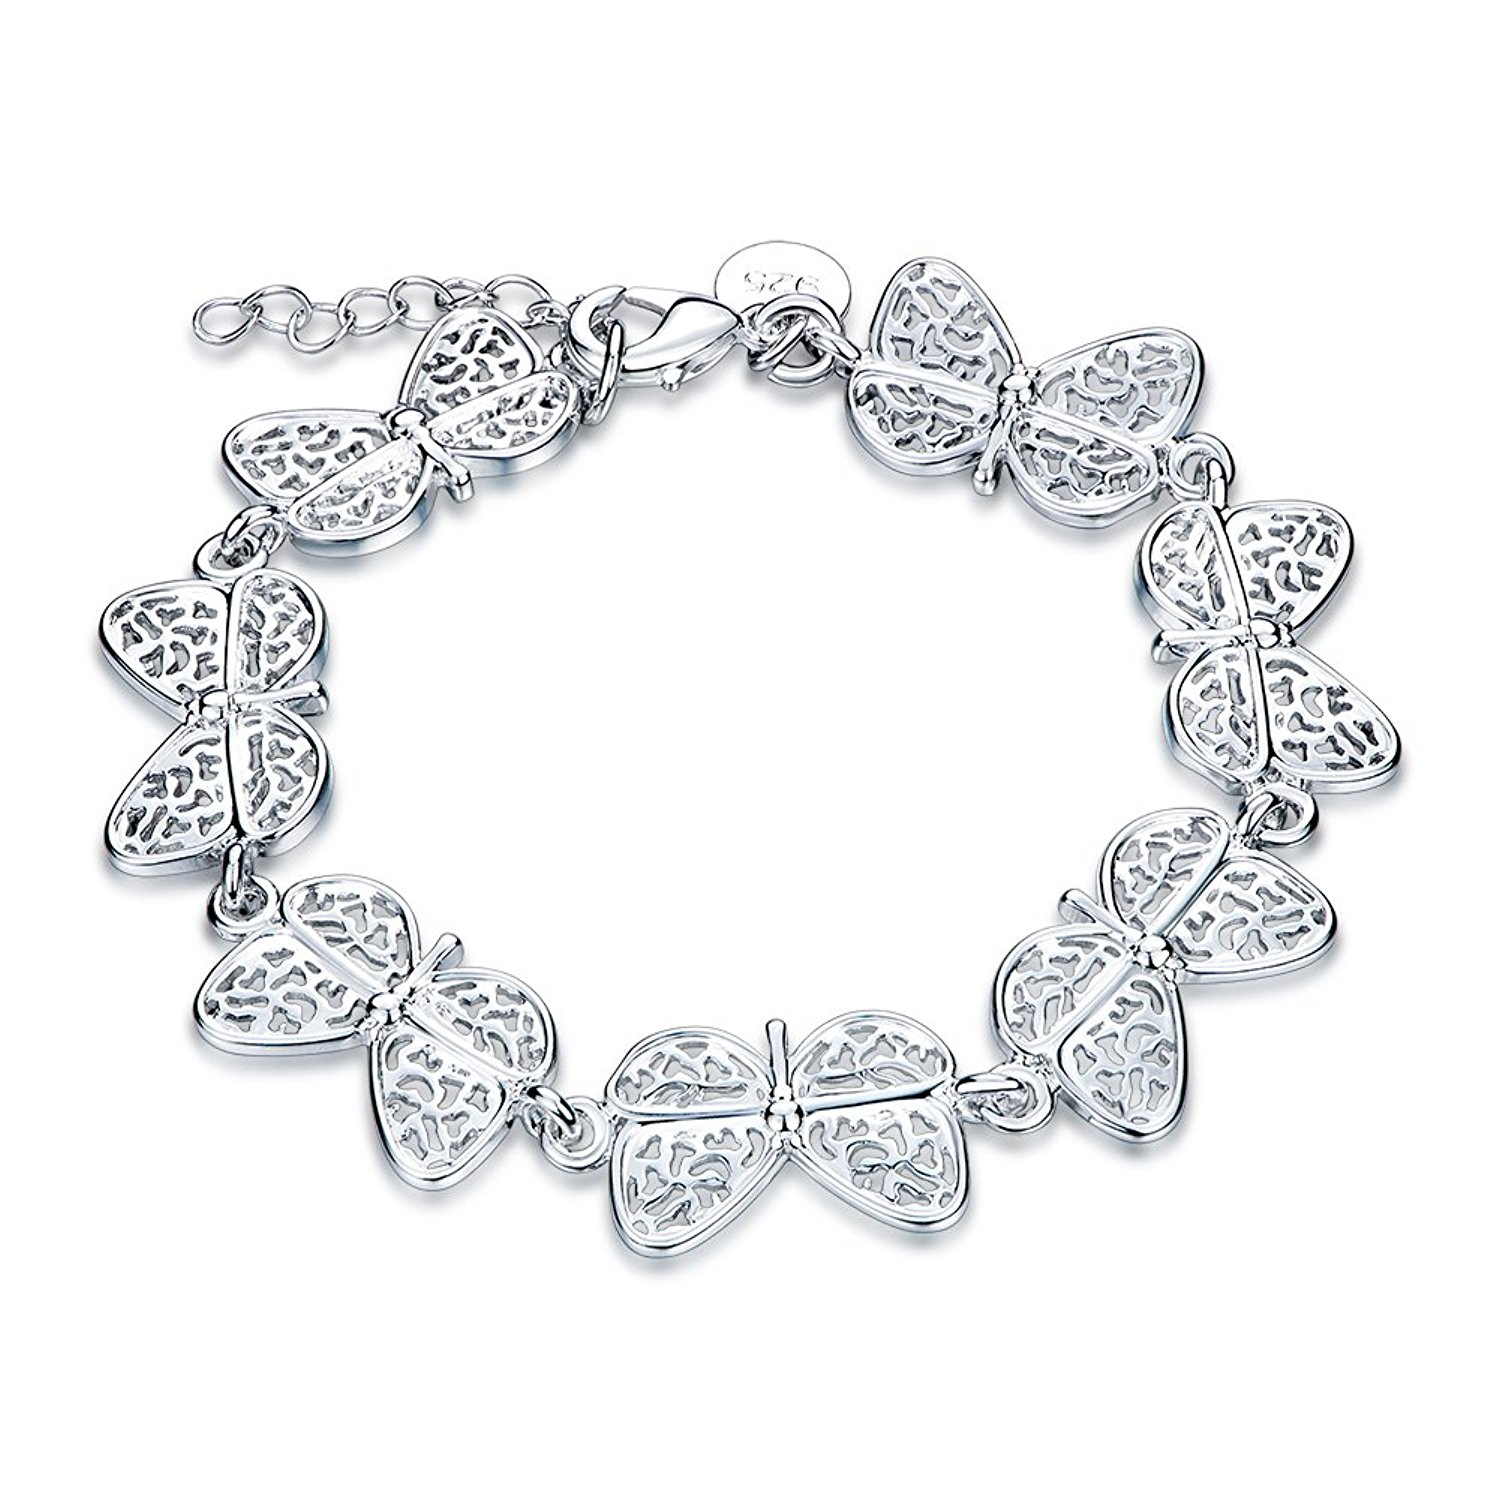 Women Fashion Charms Jewelry Plate With Silver Classic Insect Cable Chain Bracelets